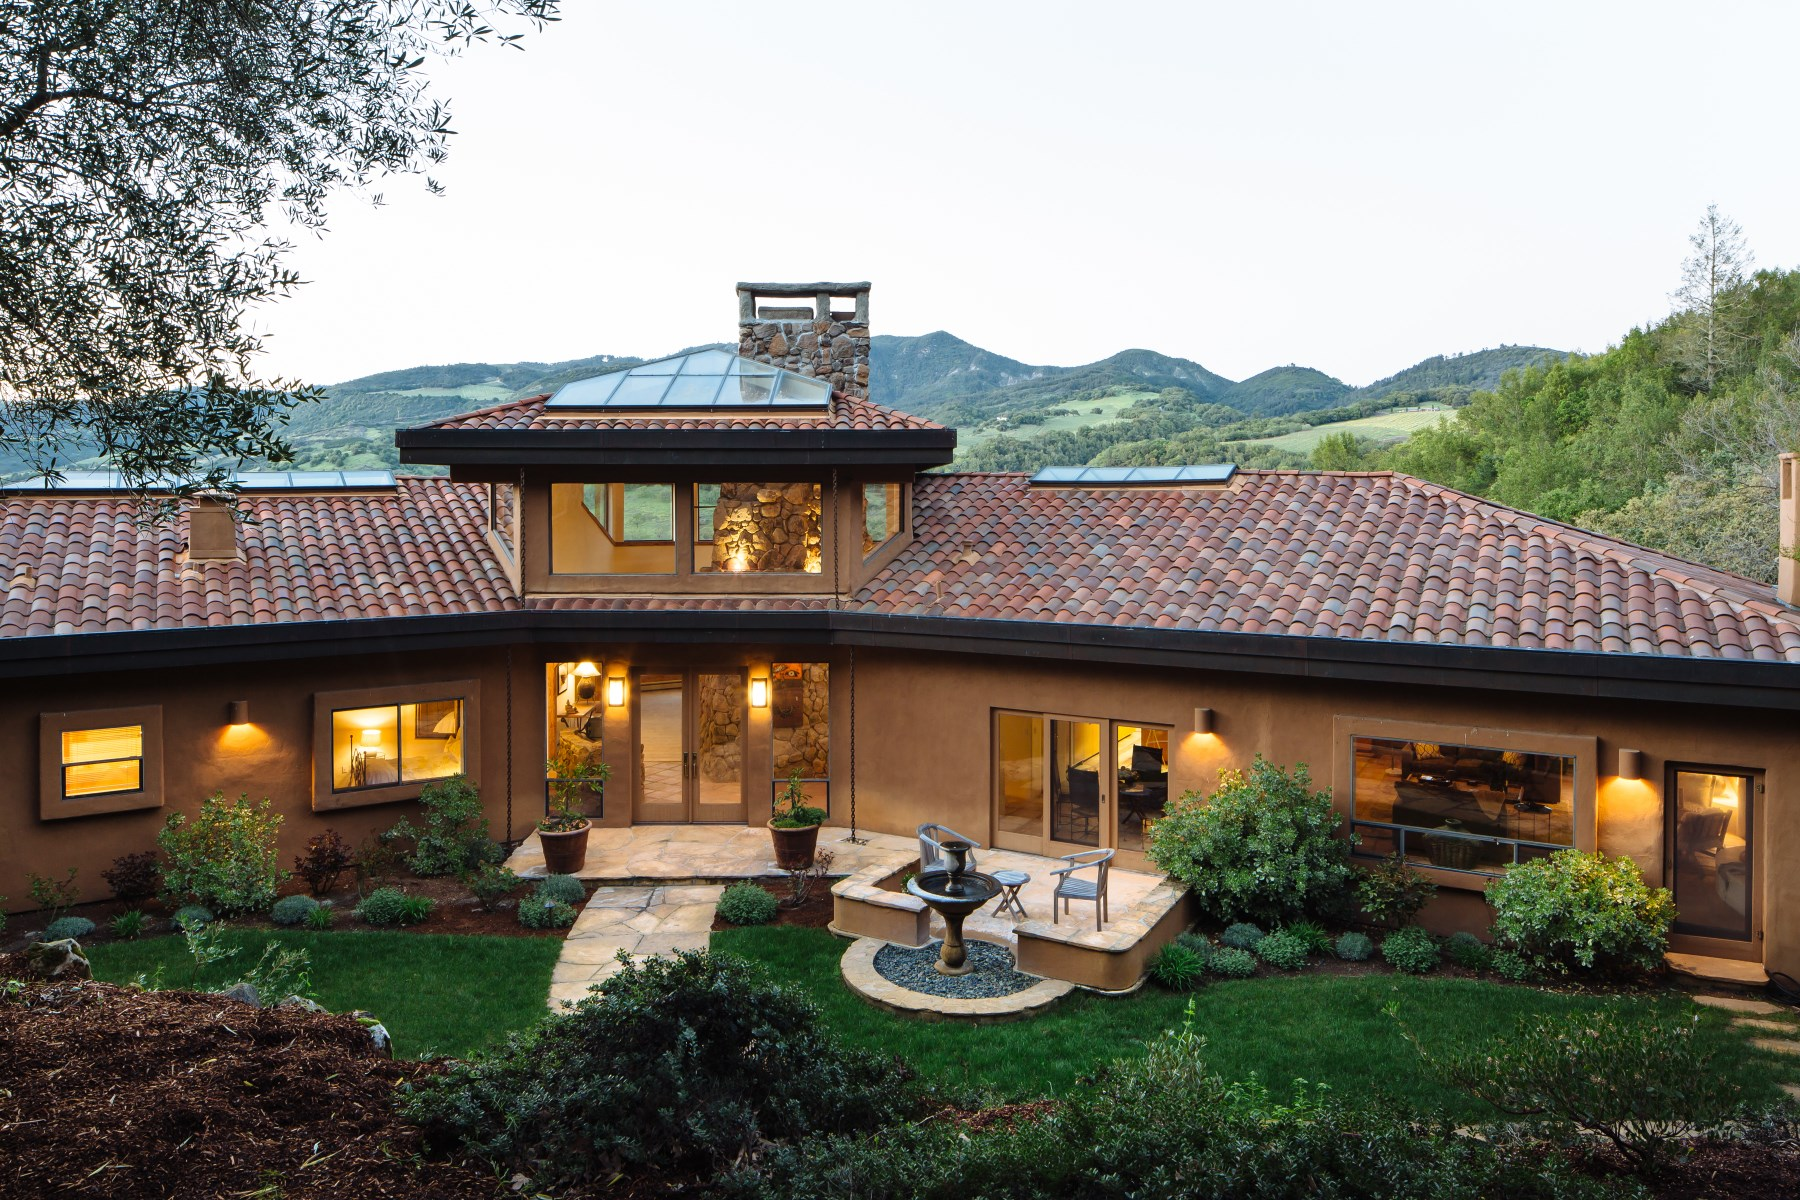 Single Family Home for Sale at Wine Country Retreat Sonoma, California, 95476 United States